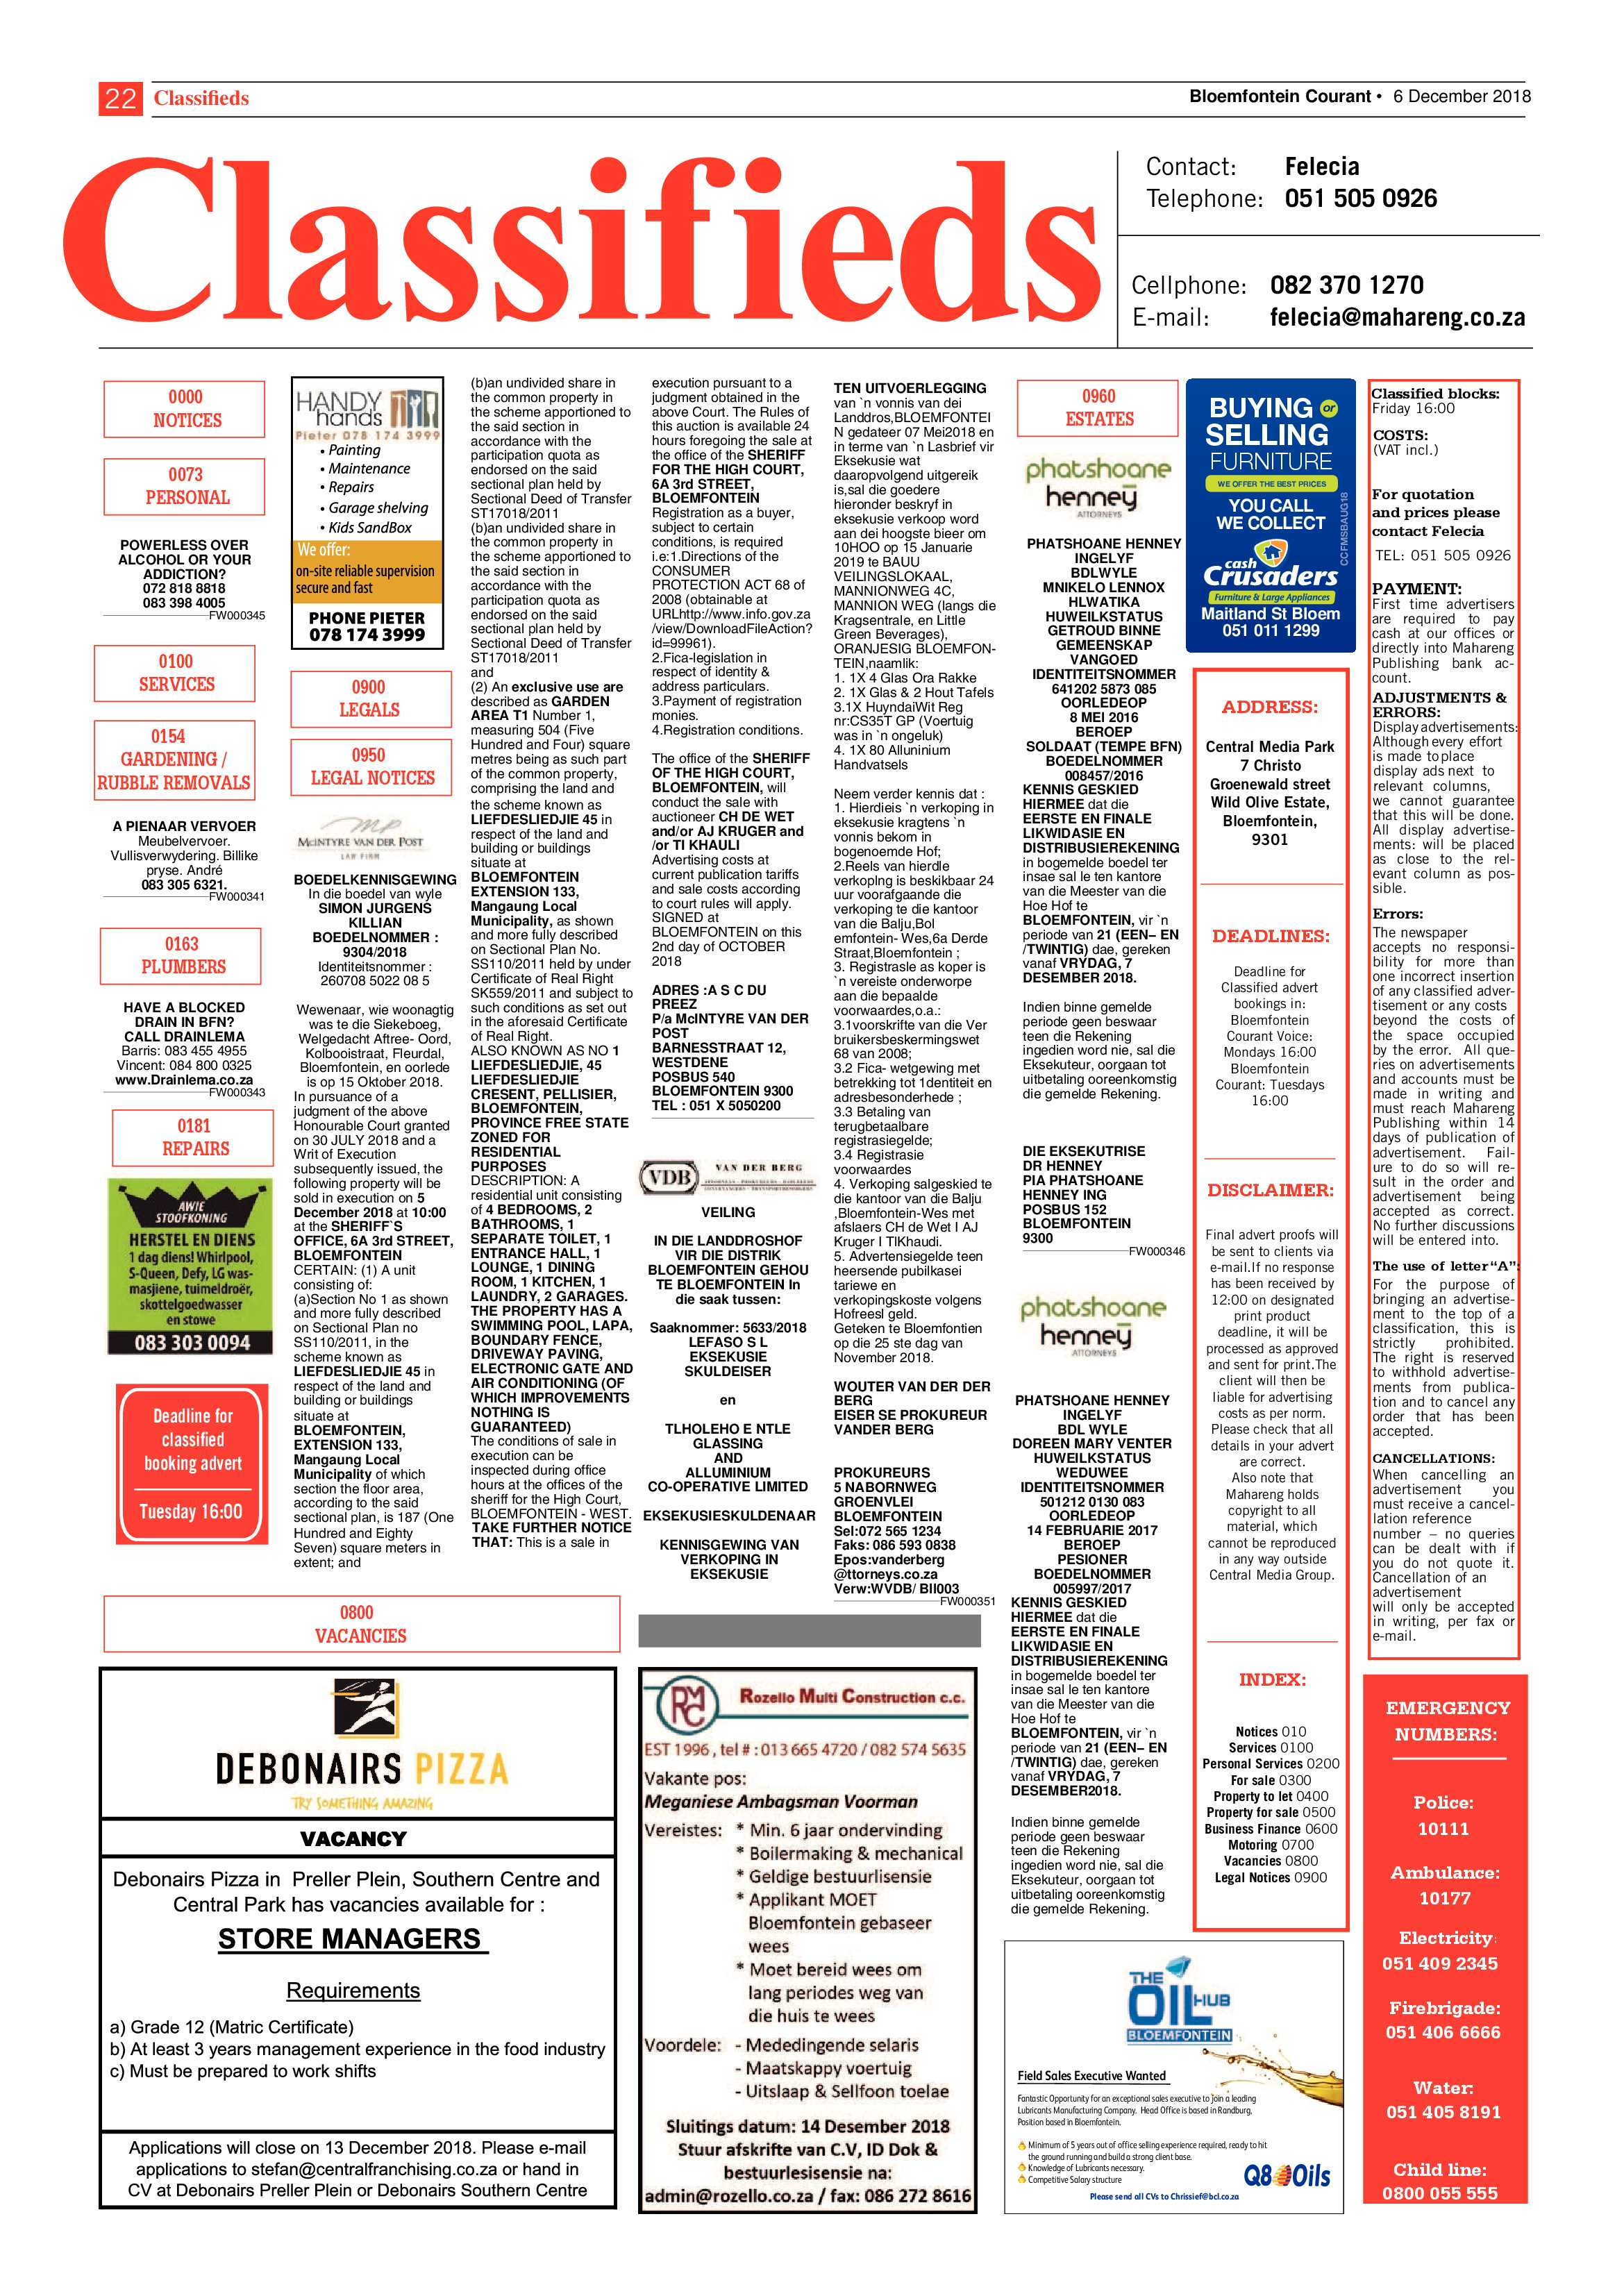 courant-6-december-2018-epapers-page-23